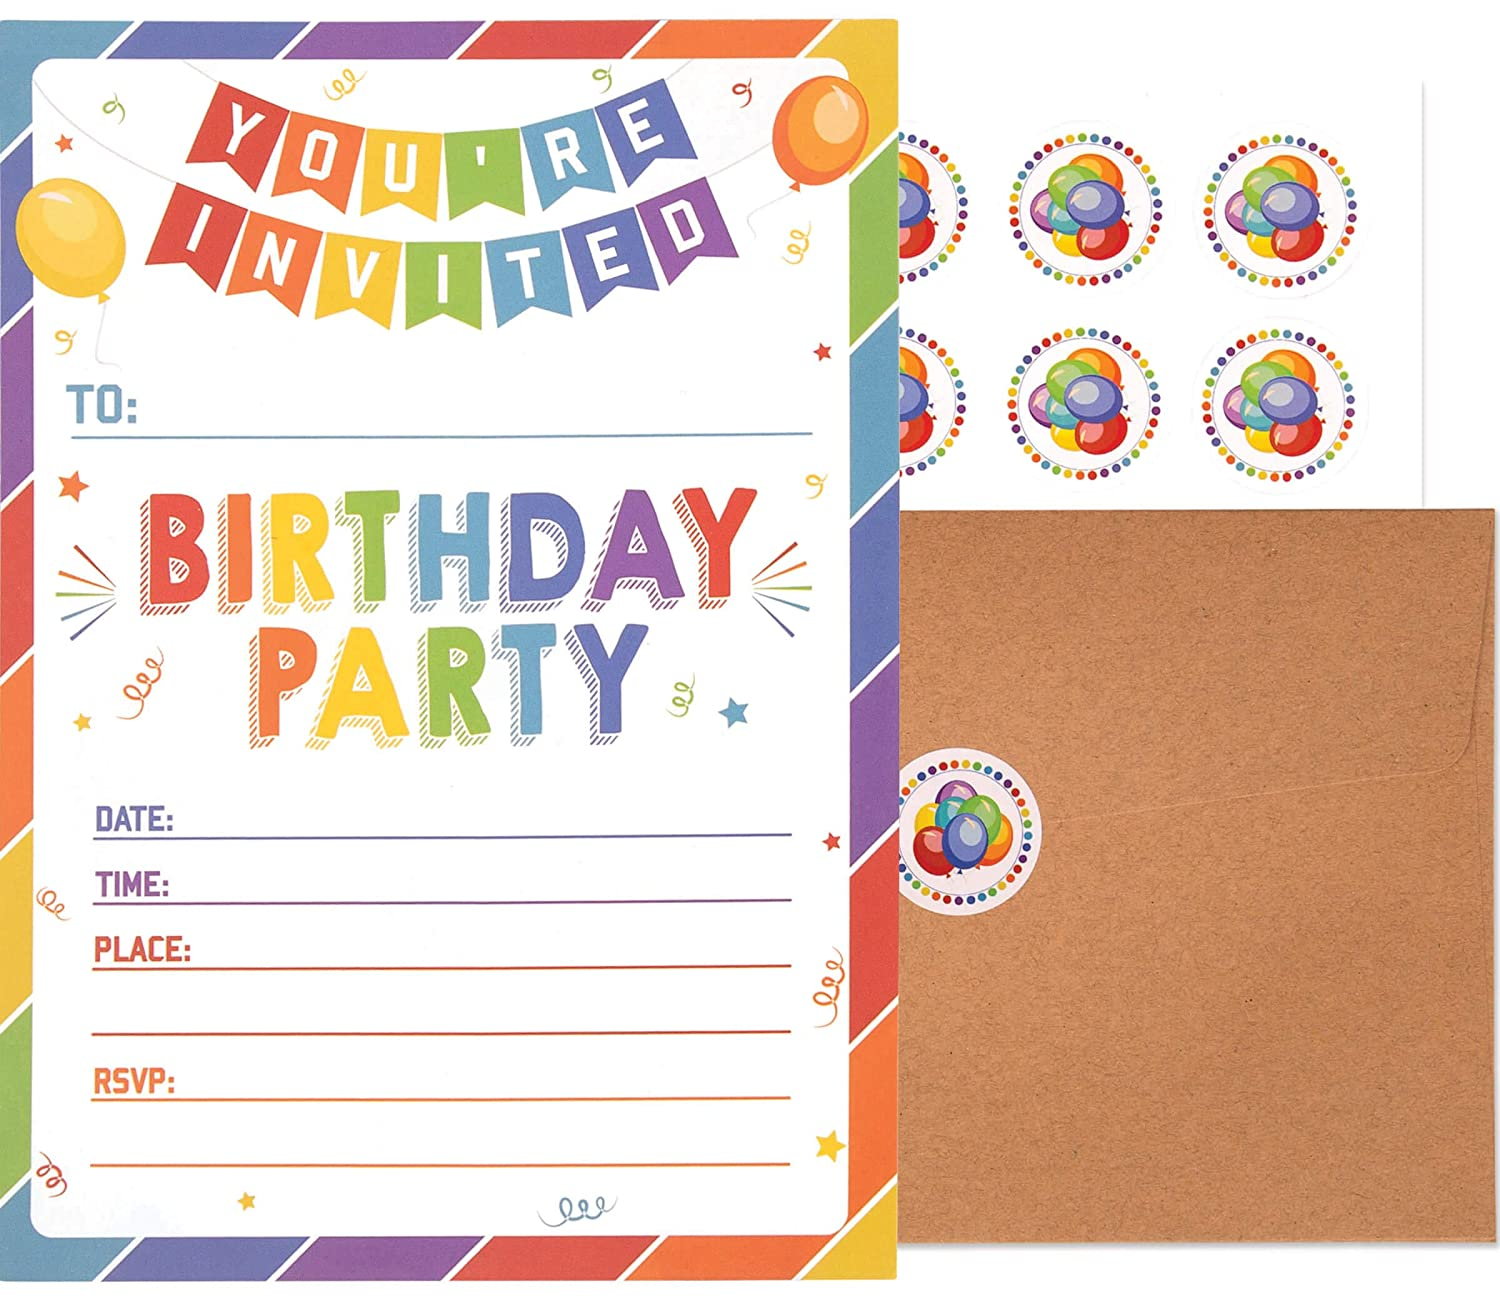 Birthday Invitations With Envelopes And Stickers 25 Pack Kids Rainbow Party Invites Colorful